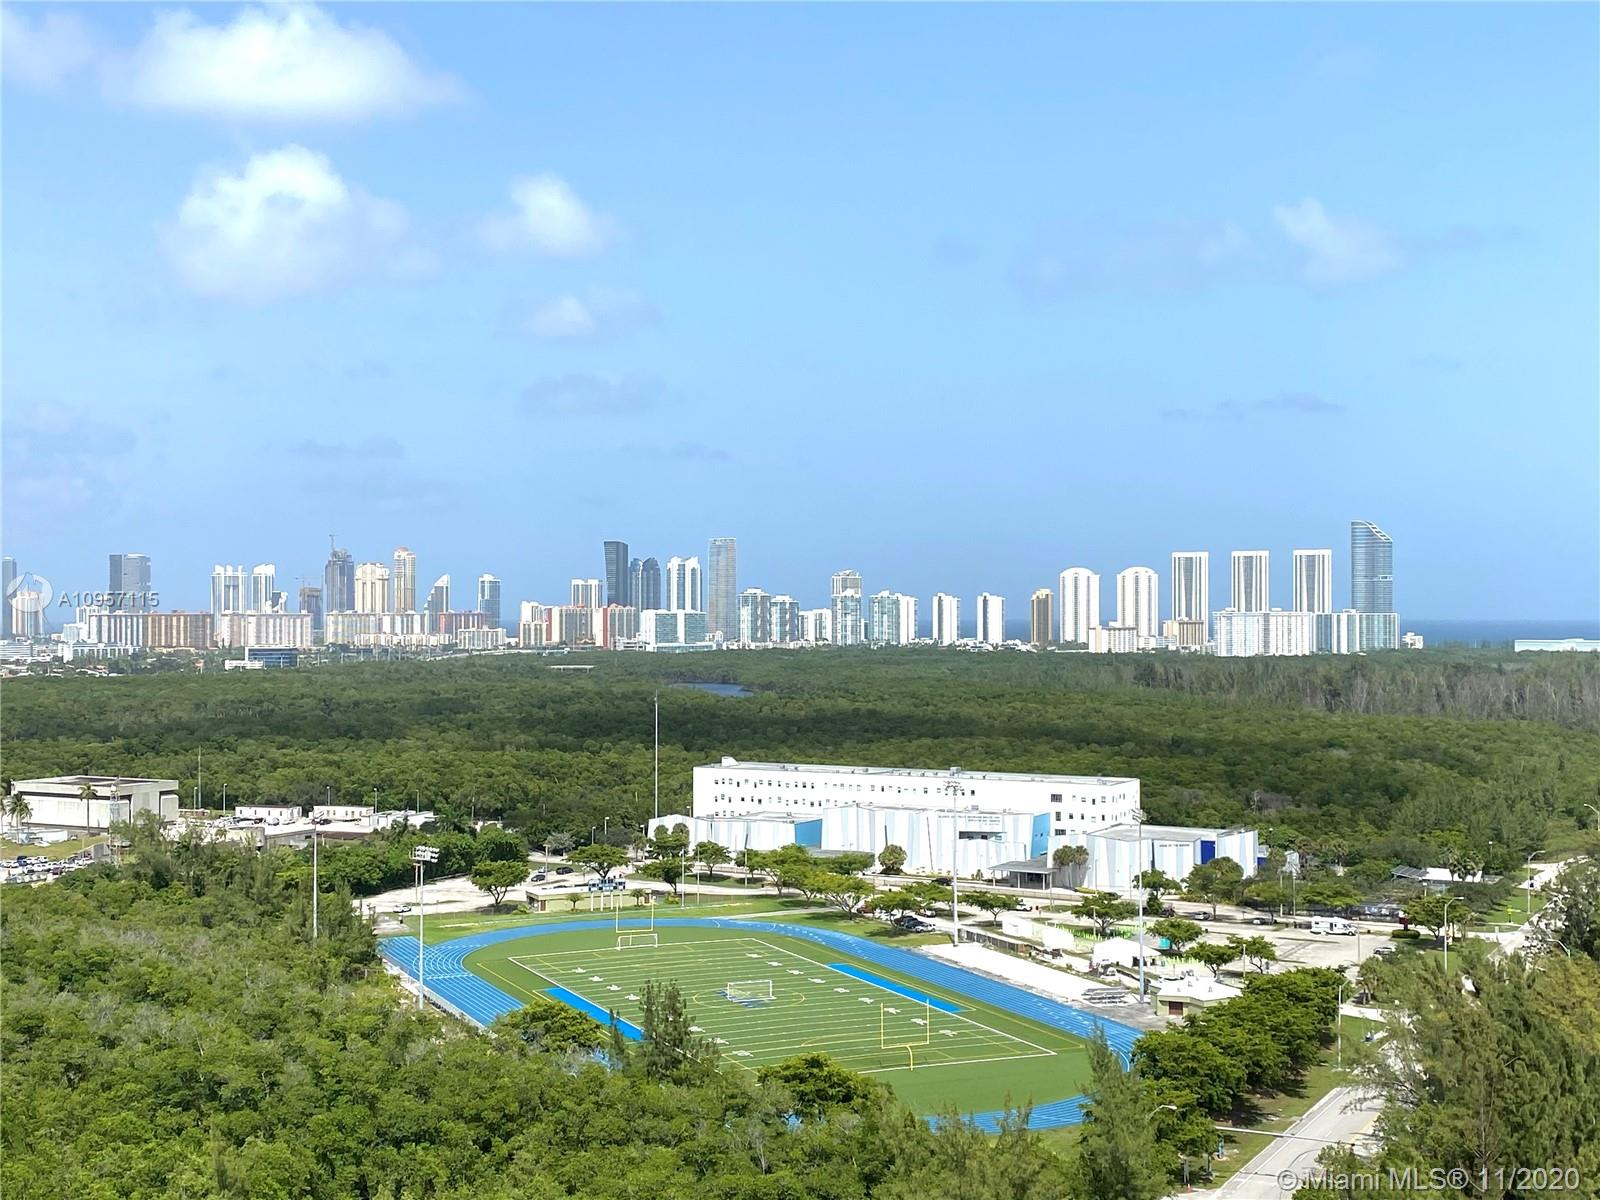 One Fifty One At Biscayne #2202 - 15051 Royal Oaks Ln #2202, North Miami, FL 33181